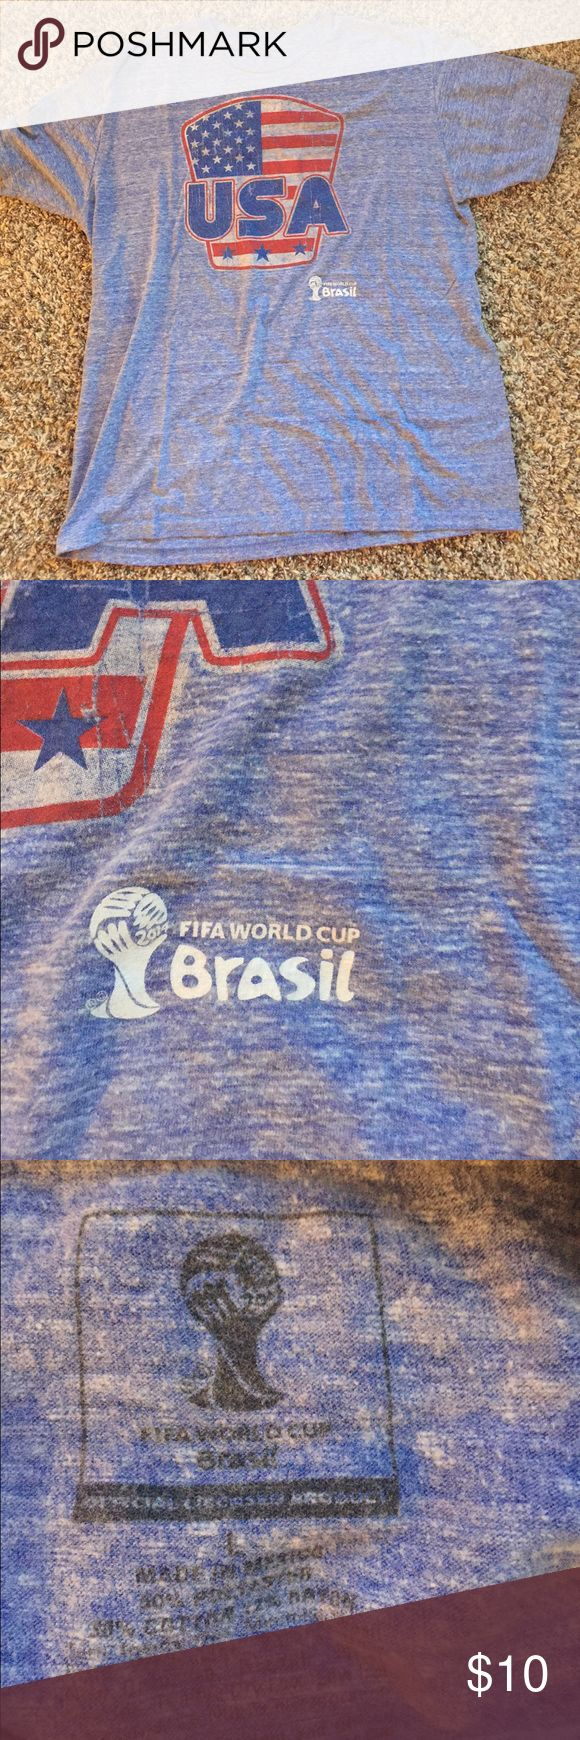 Men's USA Soccer shirt > Men's USA soccer team short sleeved shirt. 2014 Brazil FIFA Cup edition. Vintage style with light blue color and light colored details. Close up picture shows World Cup edition detail. Great condition < Shirts Tees - Short Sleeve